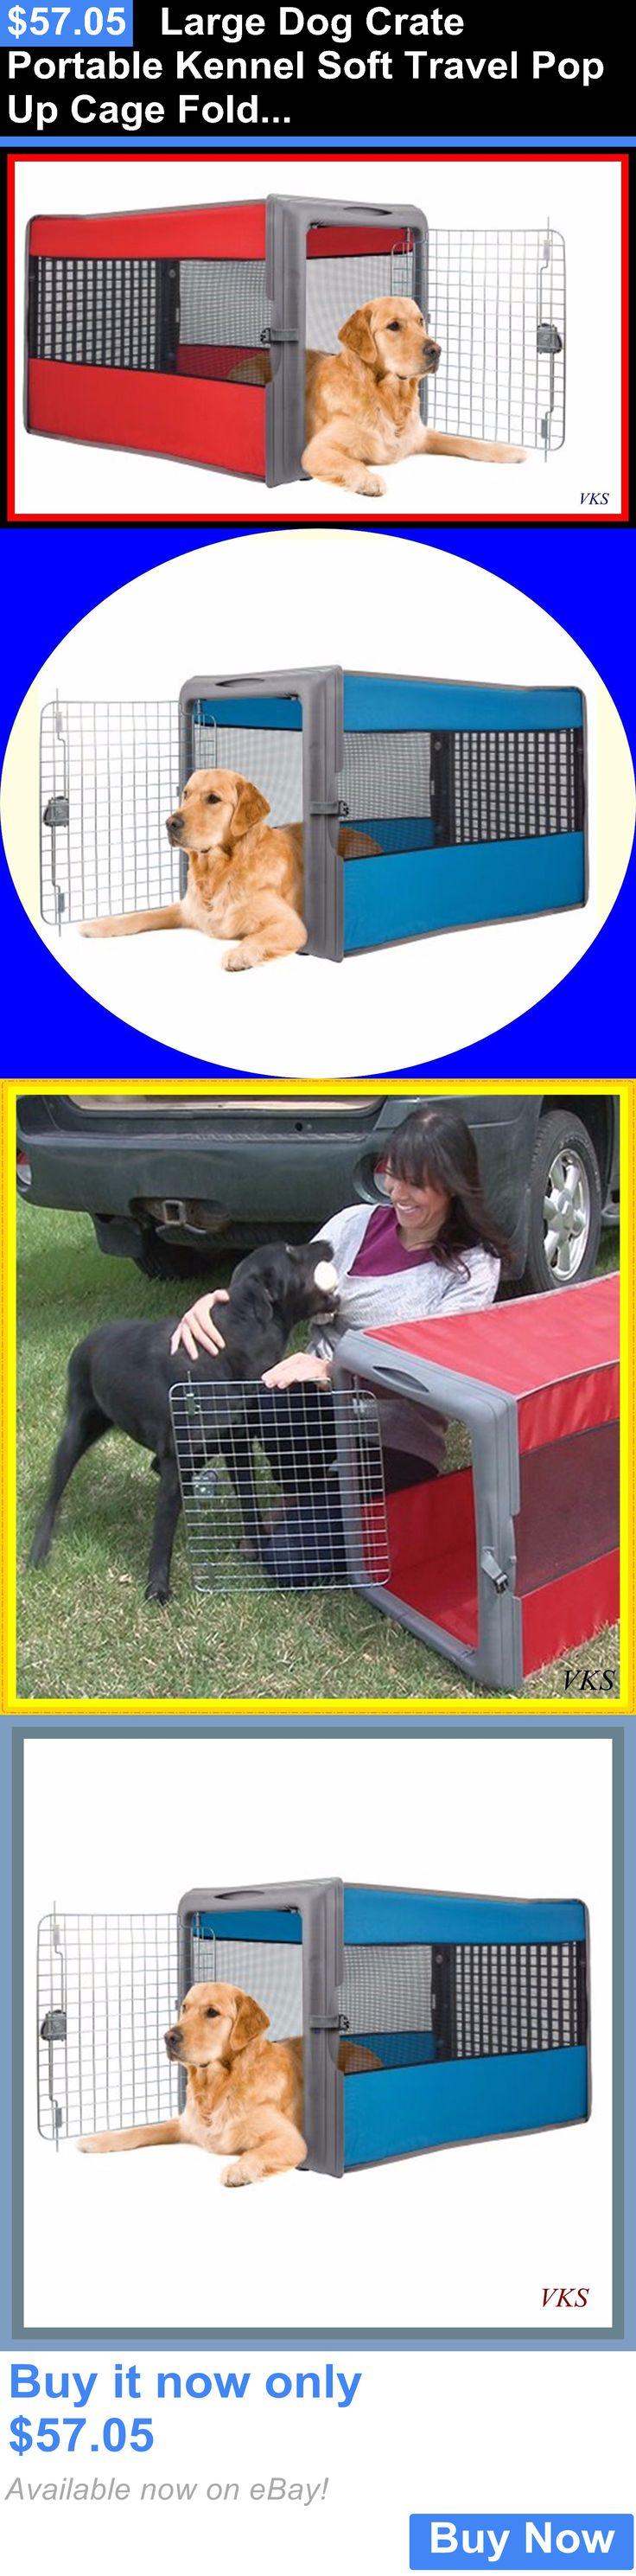 Animals Dog: Large Dog Crate Portable Kennel Soft Travel Pop Up Cage Folding Collapsible New BUY IT NOW ONLY: $57.05